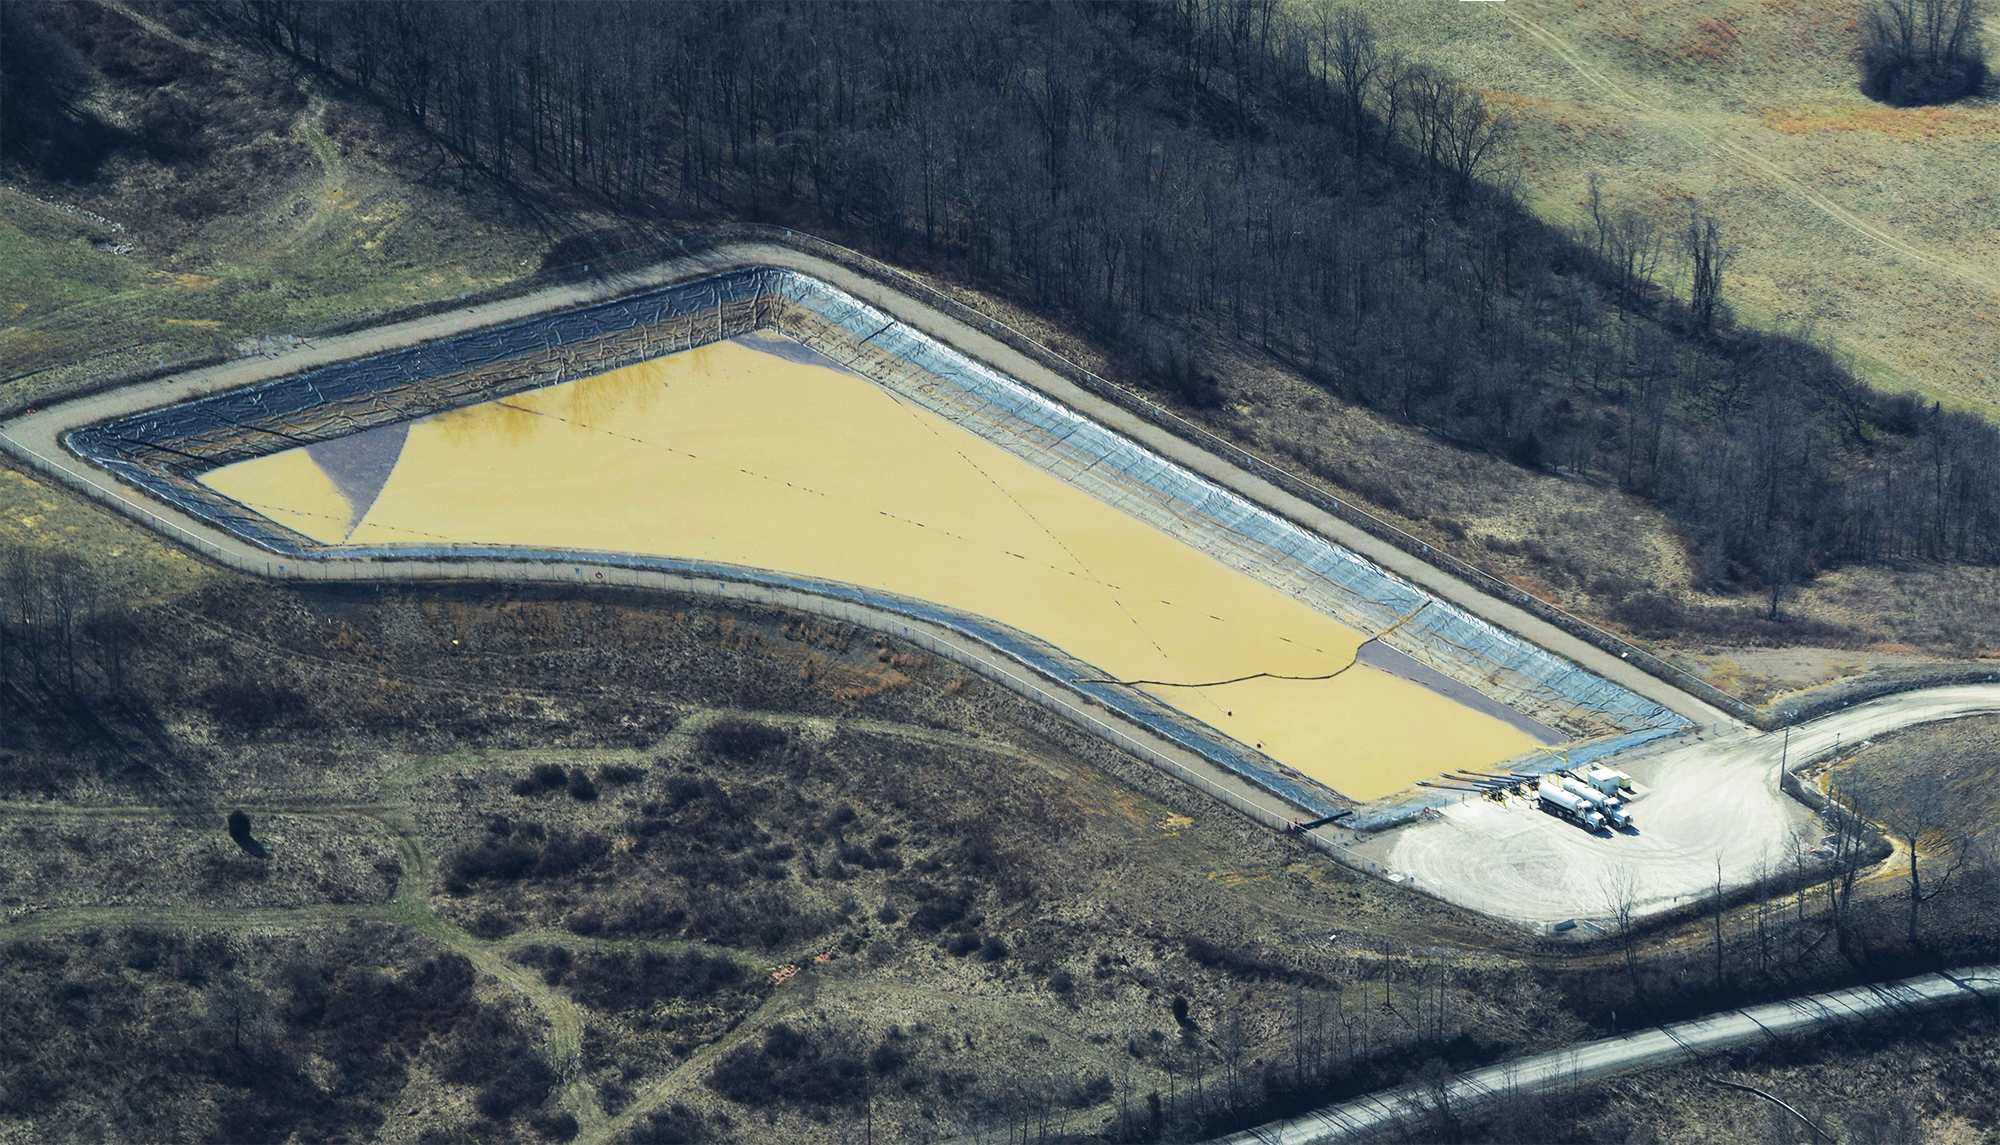 """Hydraulic fracturing liquid wastewater impoundment, known as the """"Cowgill Impoundment."""""""